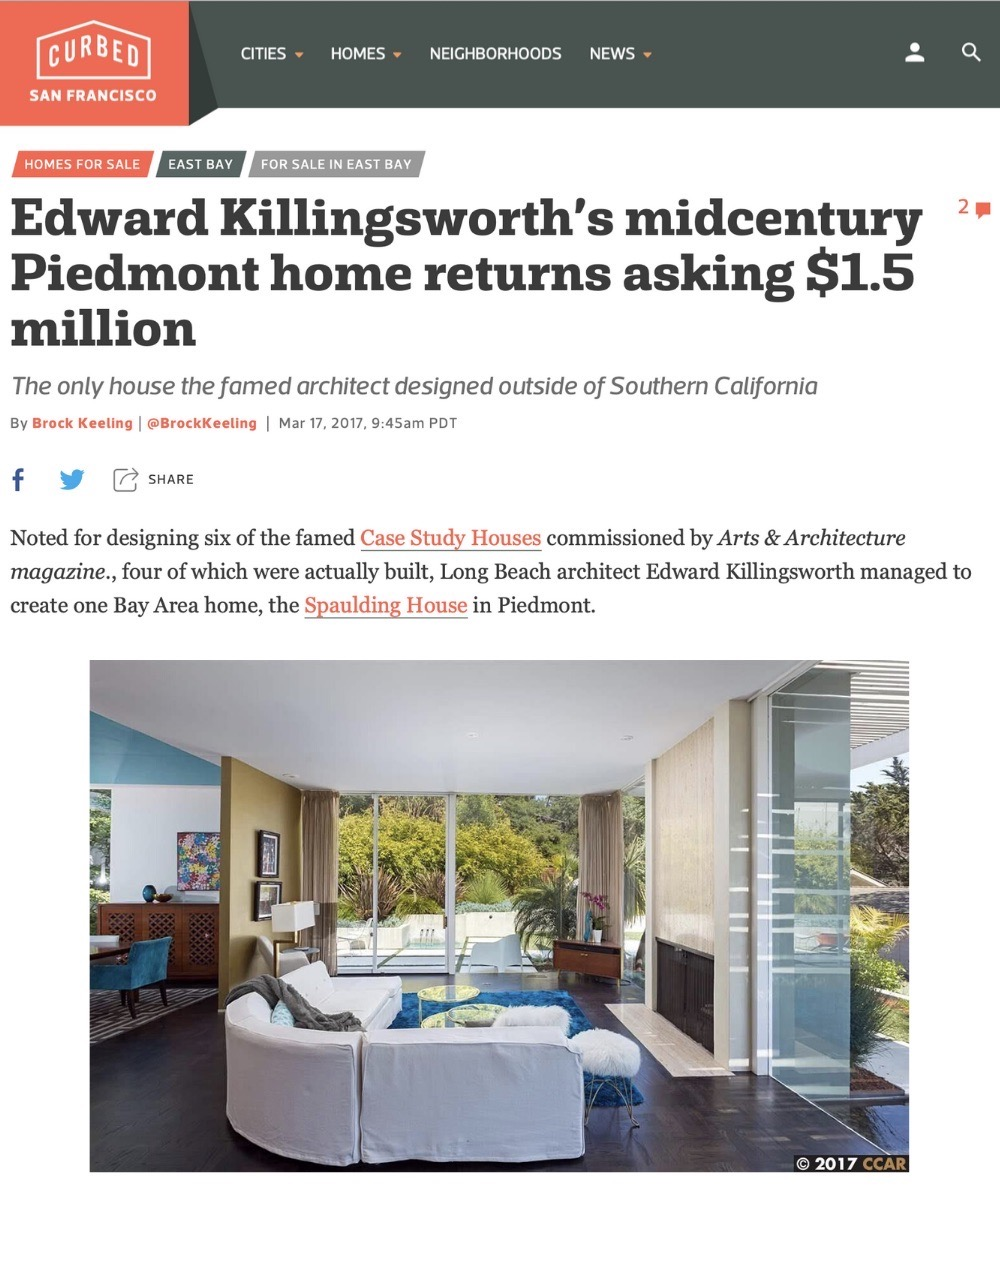 Edward Killingsworth's Midcentury Piedmont Home Returns Asking $1.5 Million